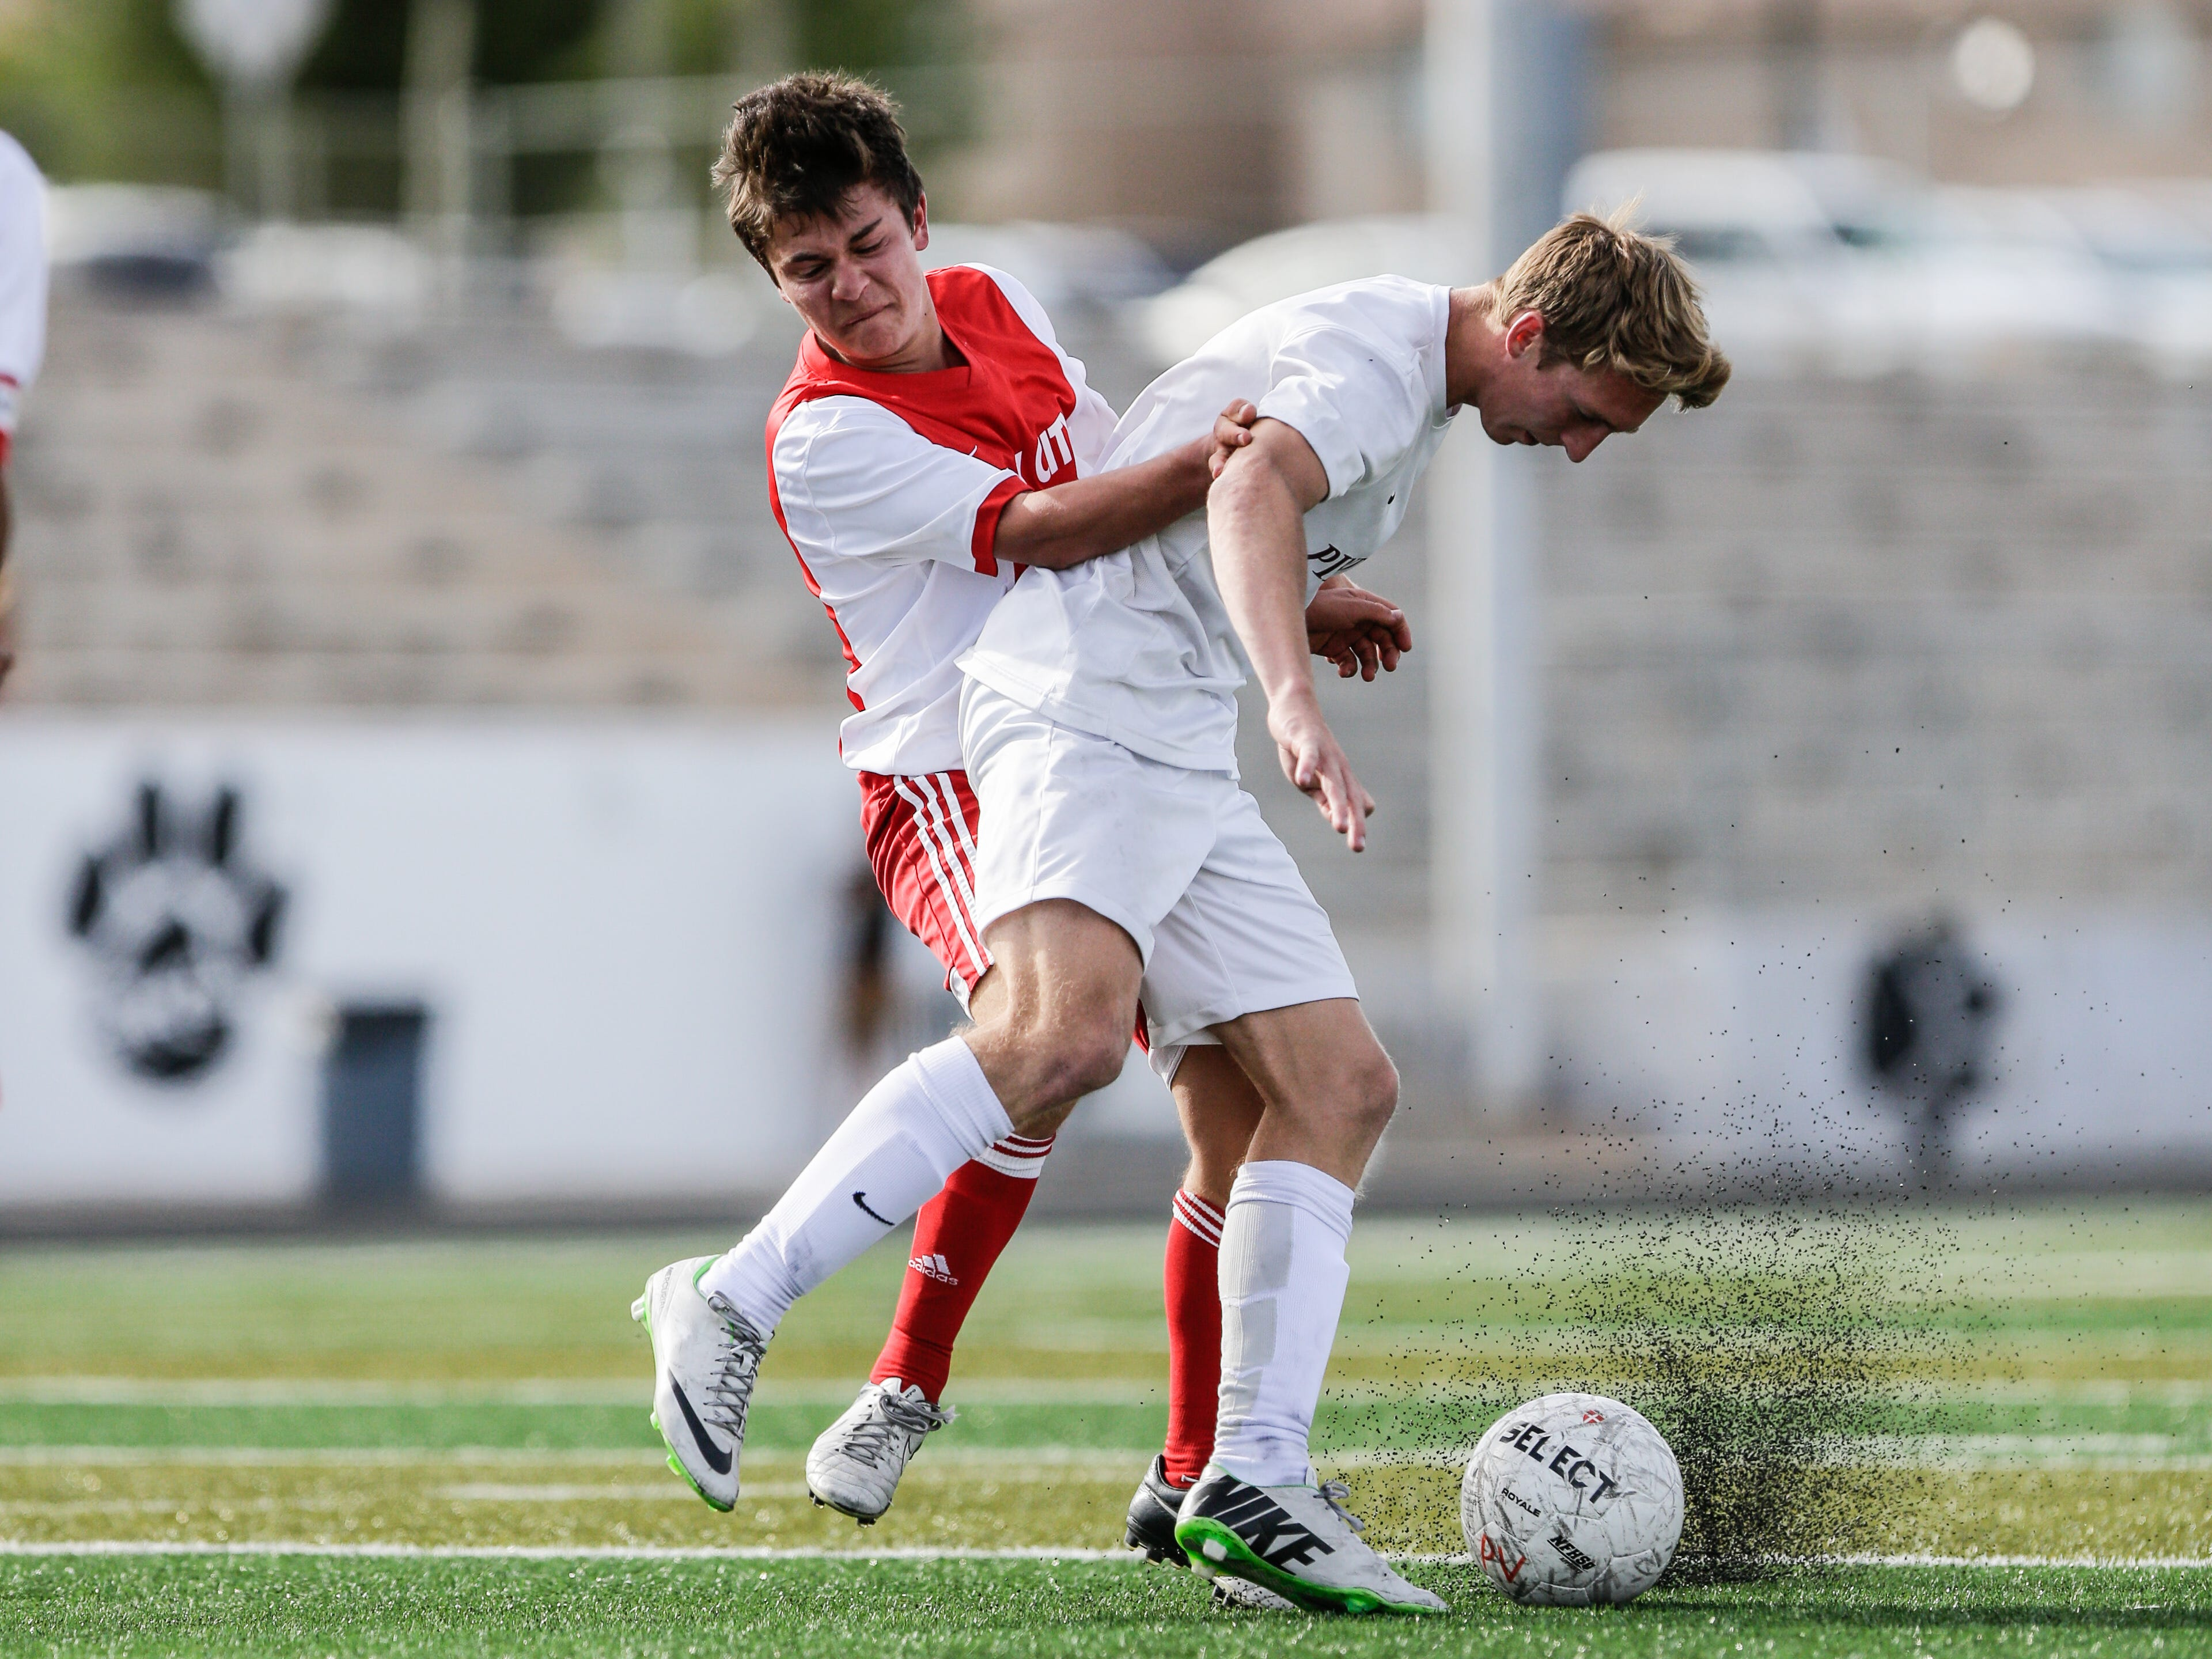 Pine View's Michael Wade battles with a Park City defender for the ball Thursday.